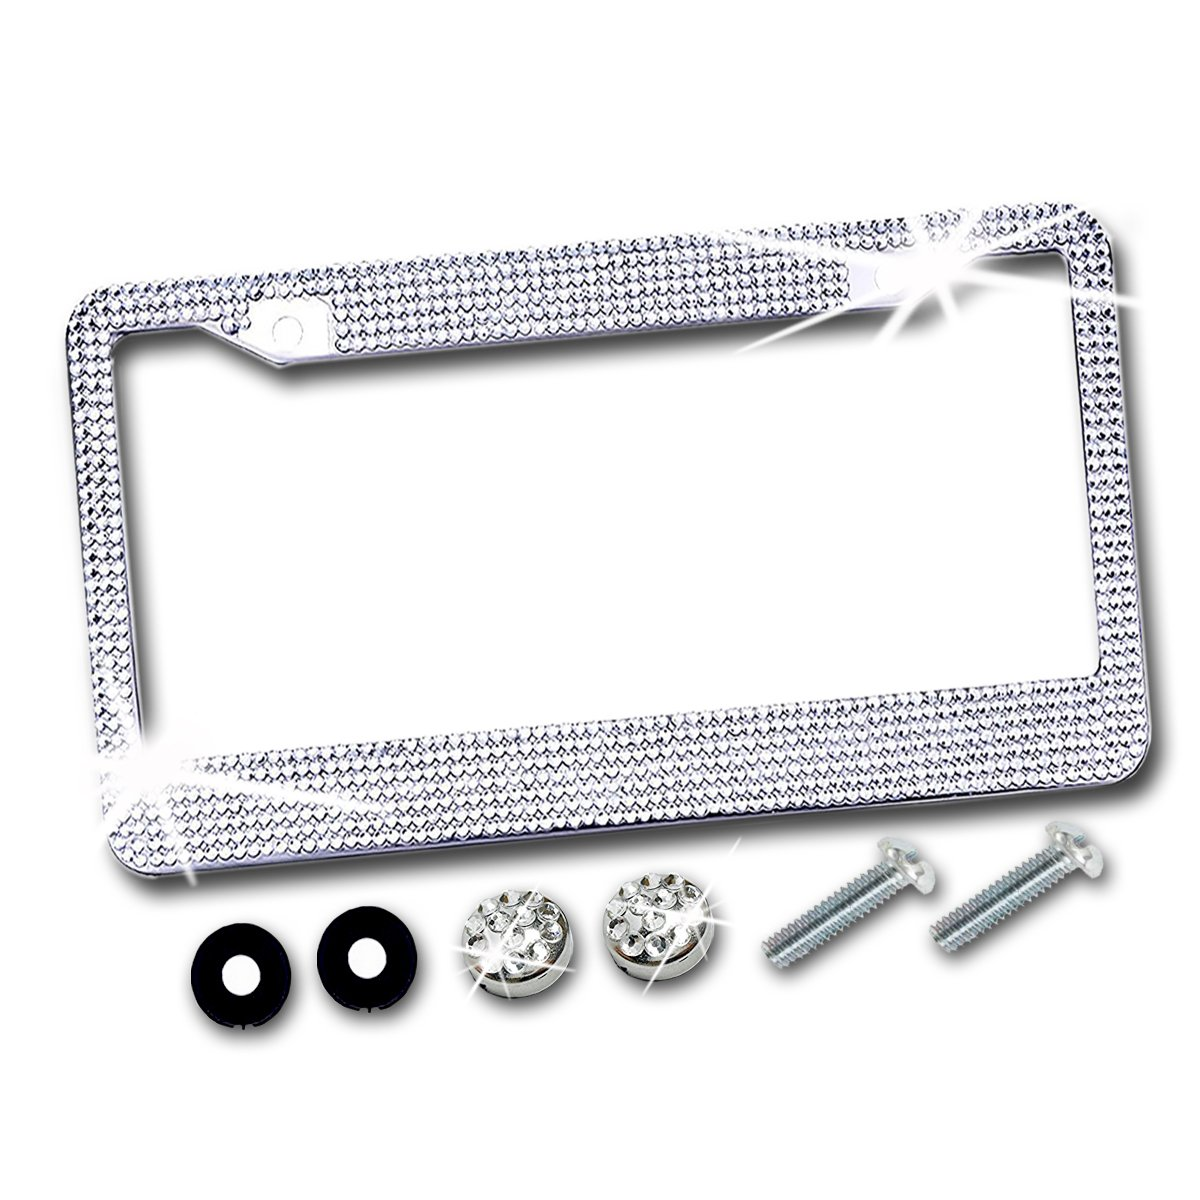 Zento Deals Shiny Crystal Bling Metal Chrome License Plate Frame with Anti-Theft Screw Caps